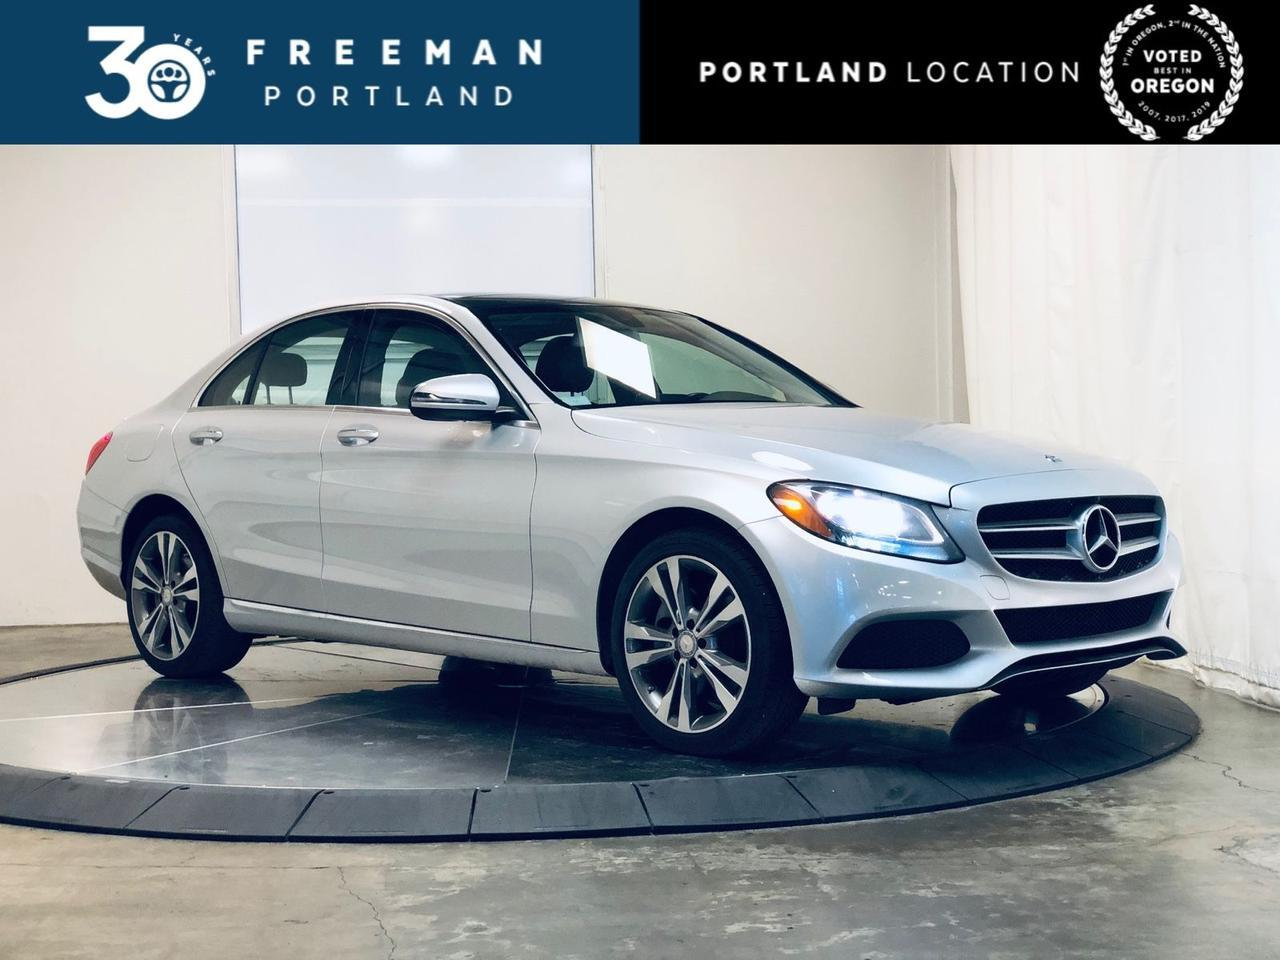 2016 Mercedes-Benz C 300 4MATIC Pano Blind Spot Assist Htd Steering Wheel Portland OR